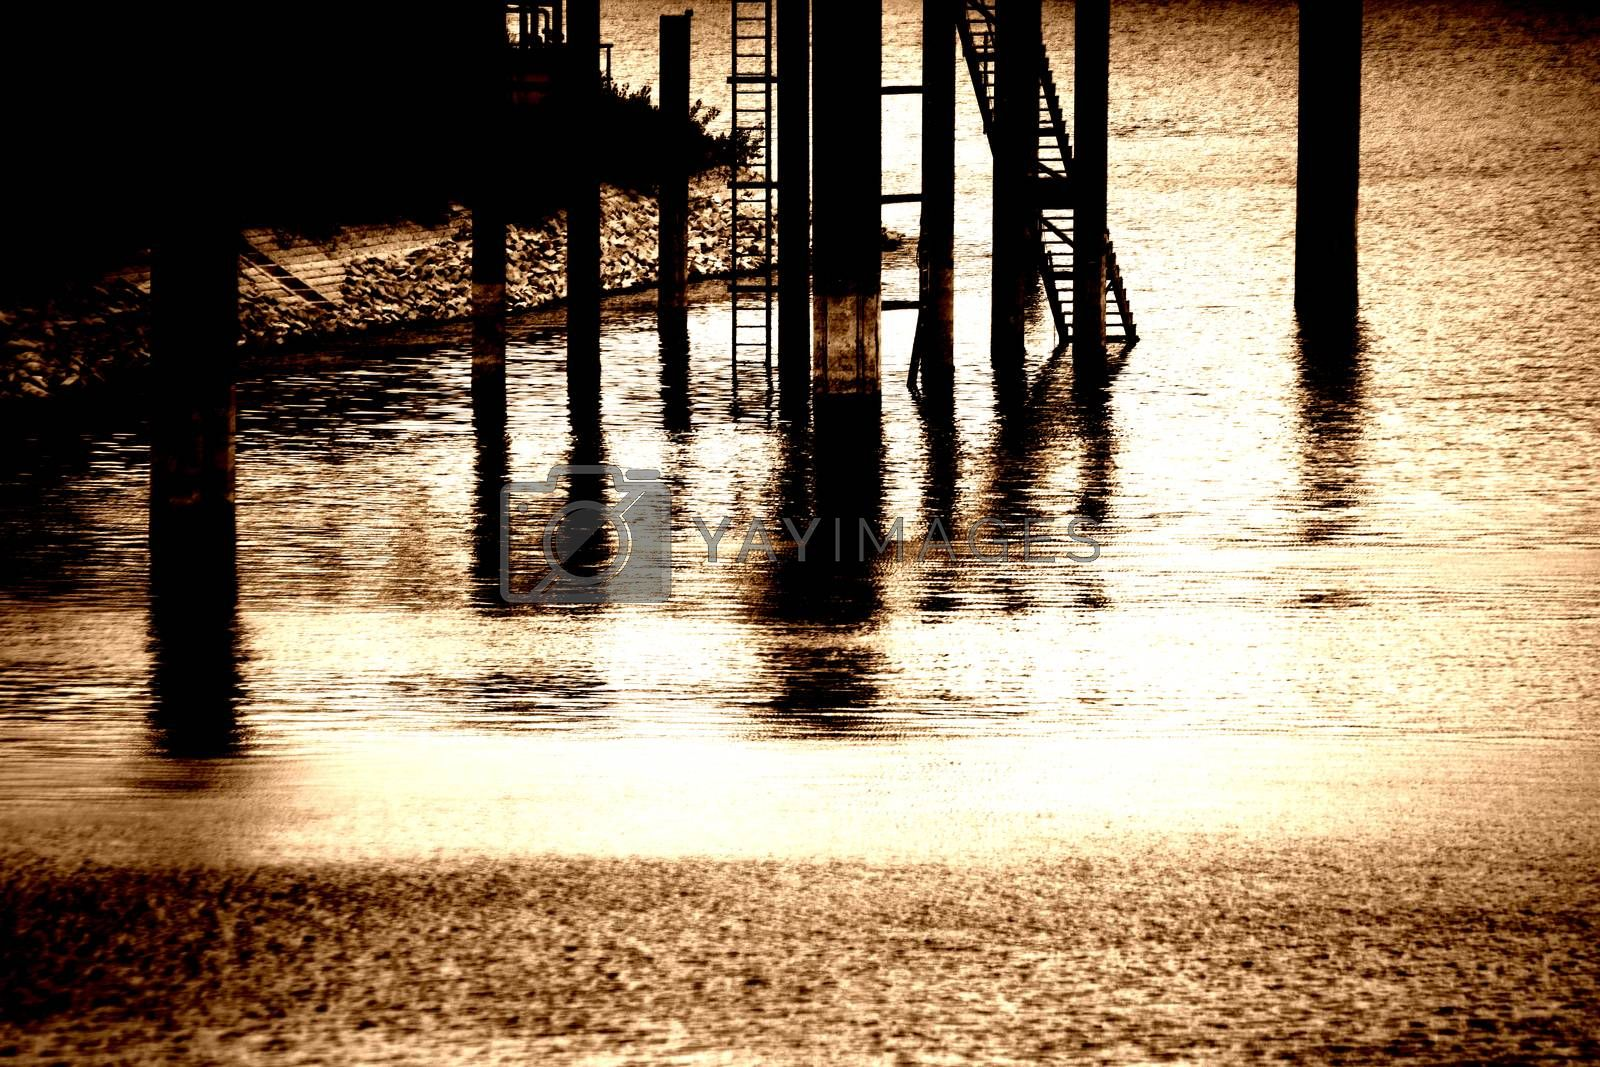 The dark pillars of a jetty and bridge in the evening light.